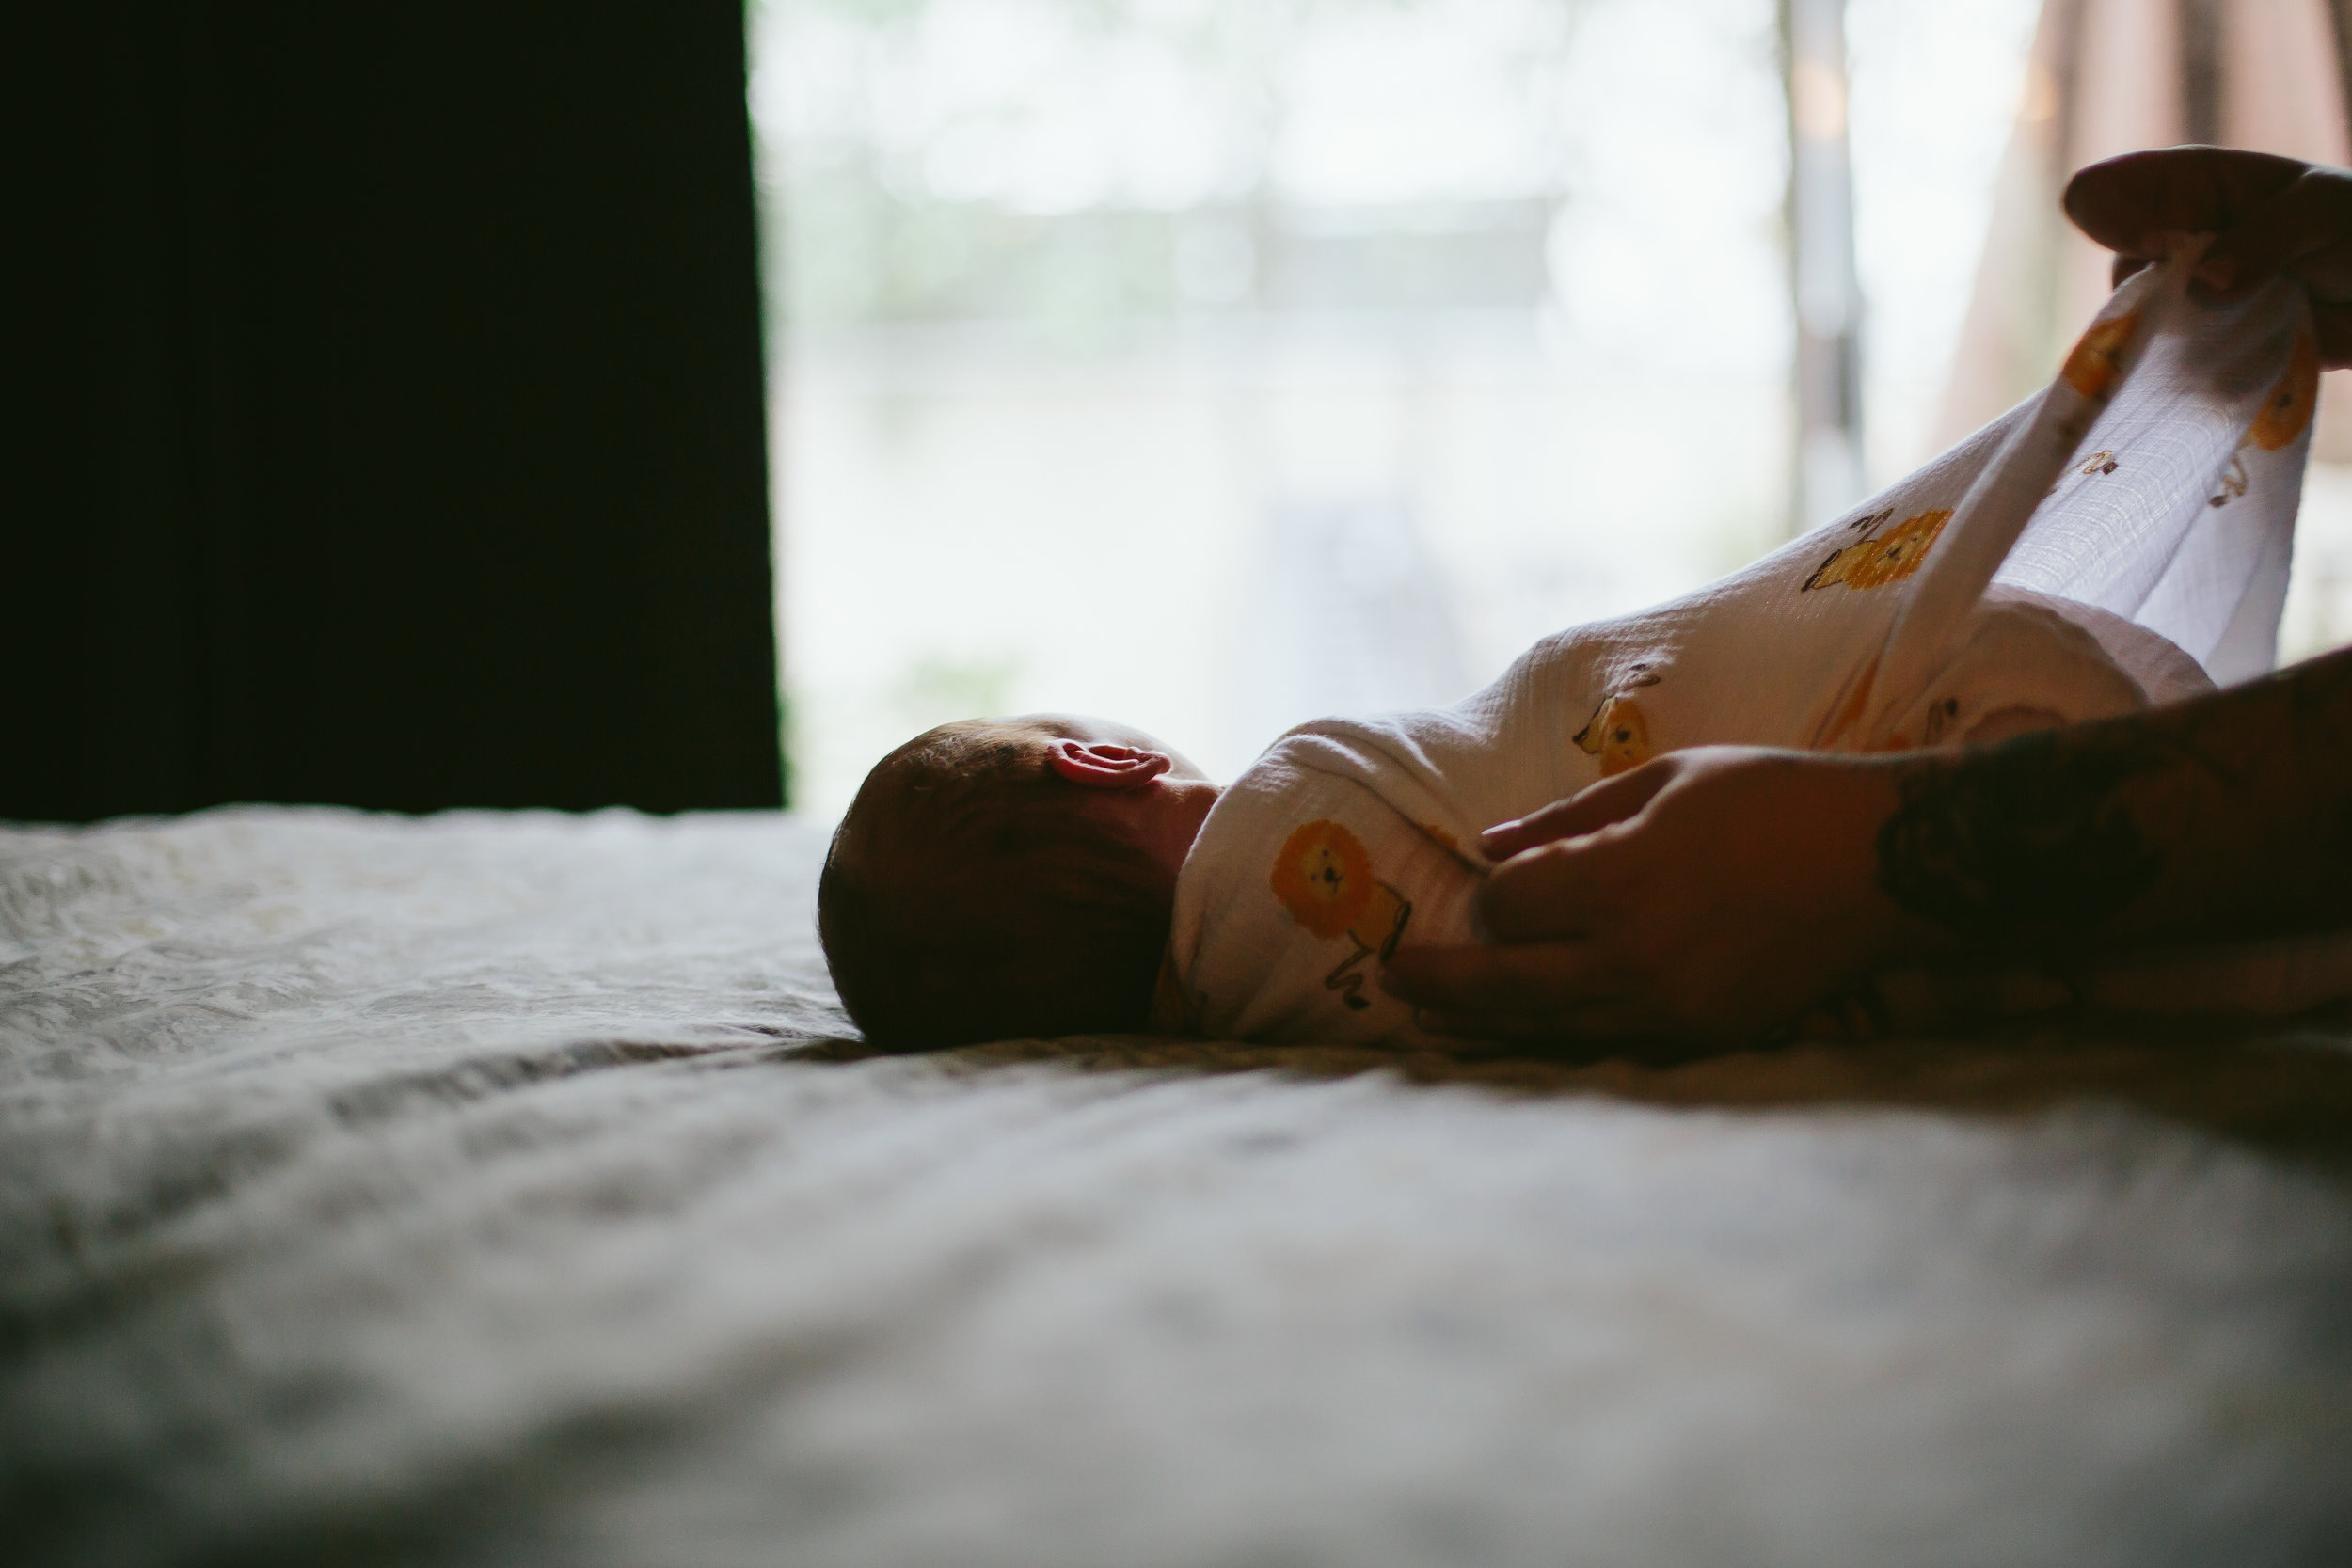 miami_documentary_newborn_photographer_steph_lynn_photo-6.jpg